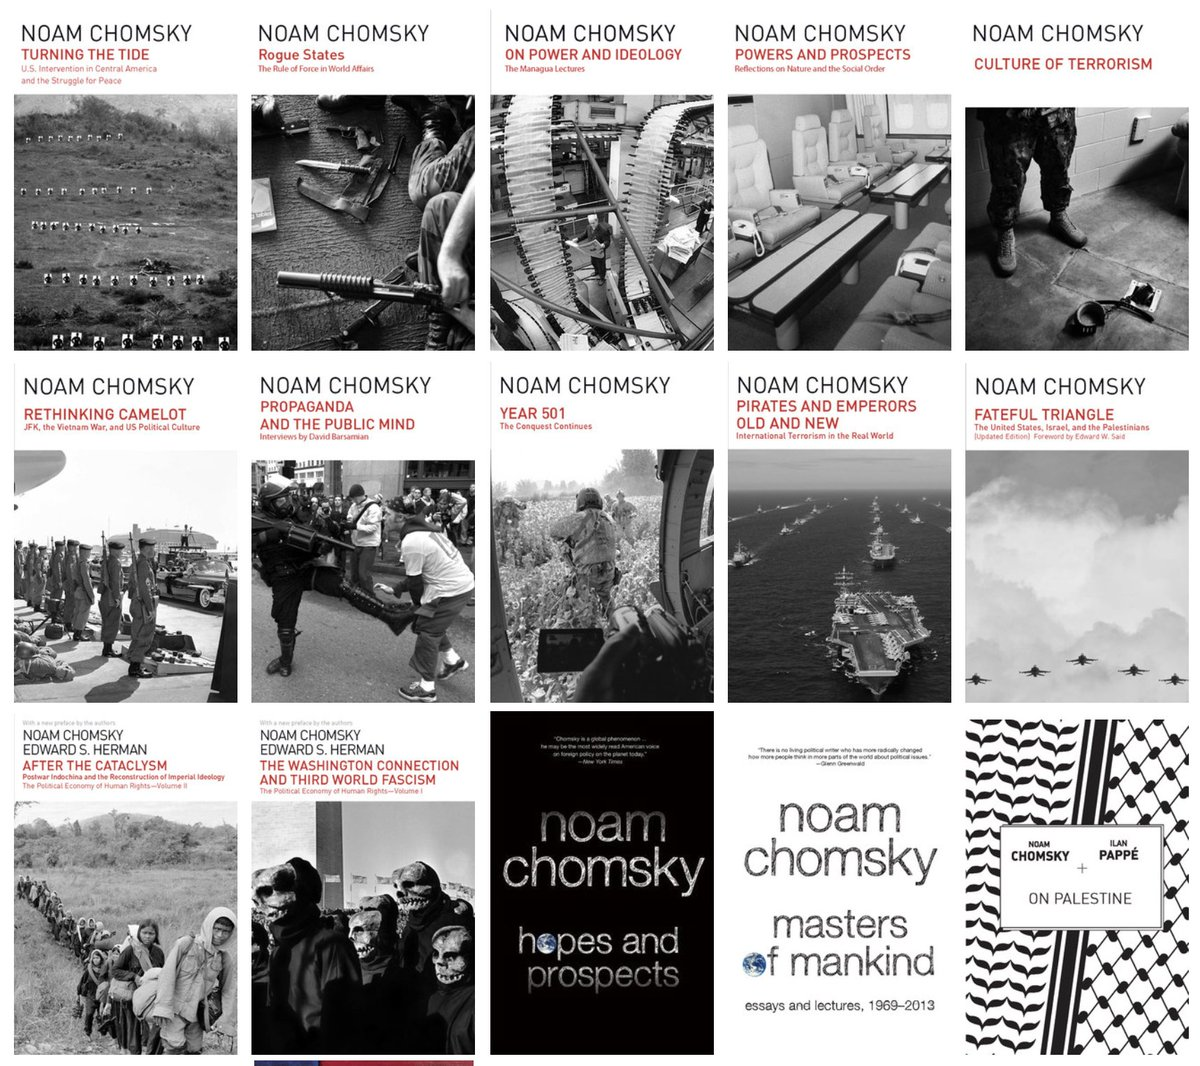 The Noam Chomsky Collection  https://www. haymarketbooks.org/blogs/11-the-n oam-chomsky-collection  … <br>http://pic.twitter.com/PAxZfdVgZb